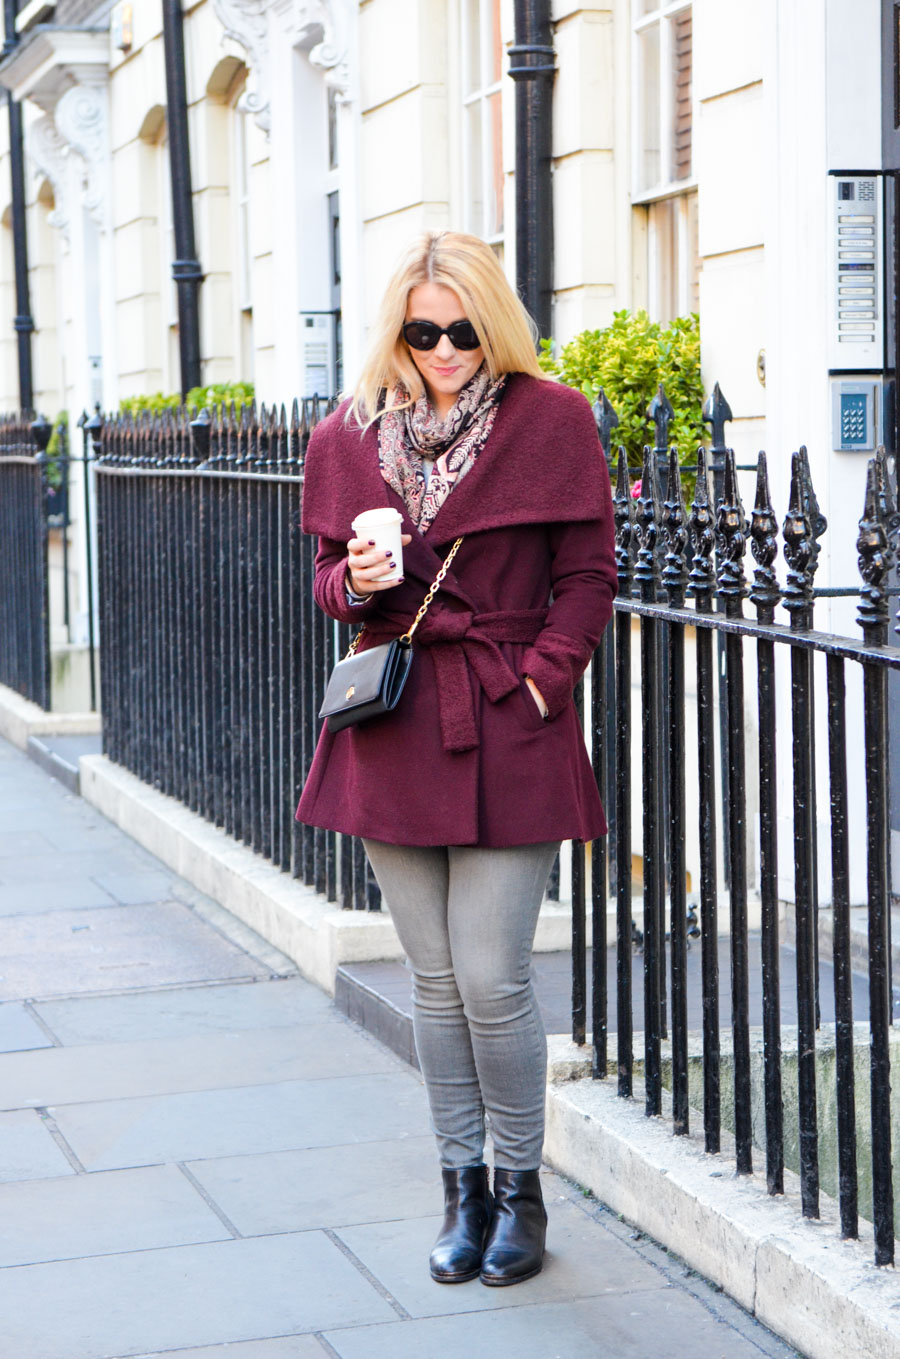 How to Wear a Wrap Coat - London Fashion Blogger Outfit